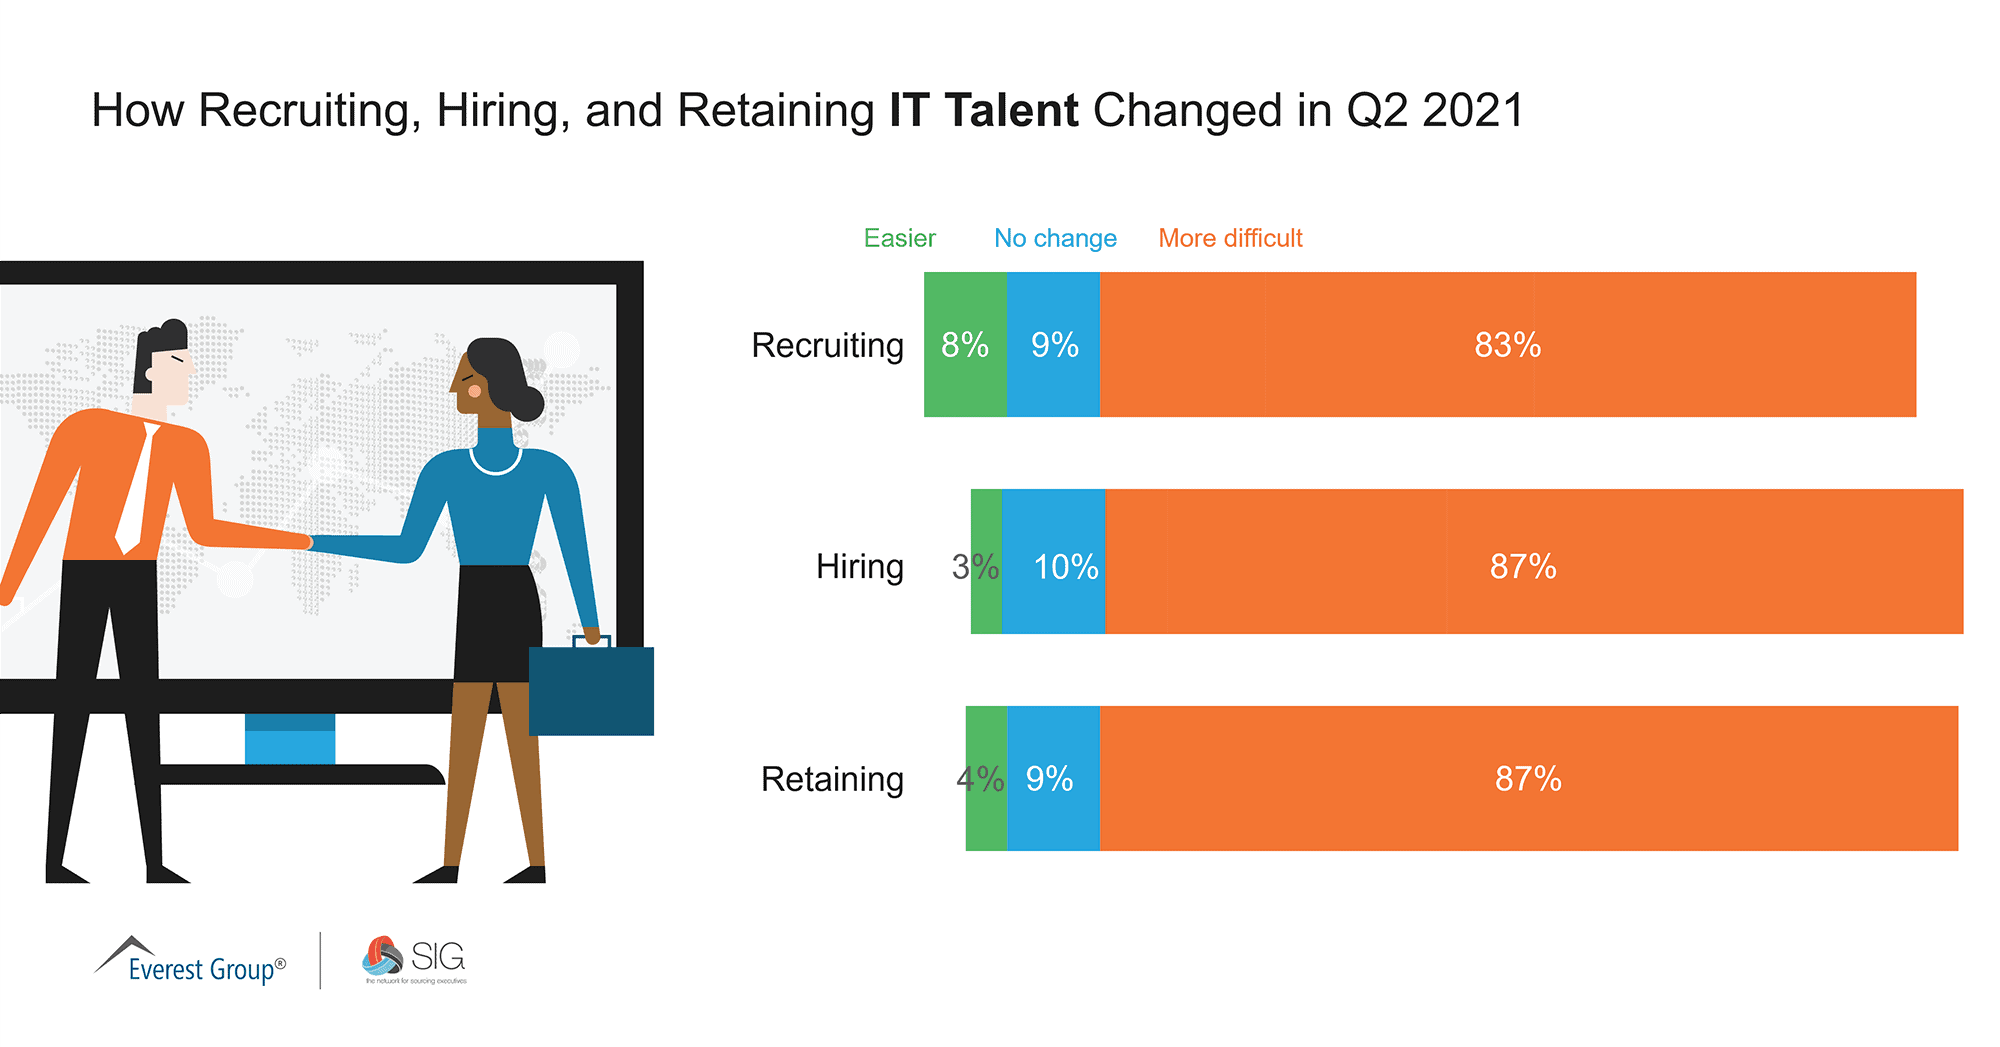 July Quick Poll | How Recruiting, Hiring, and Retaining IT Talent Changed in Q2 2021